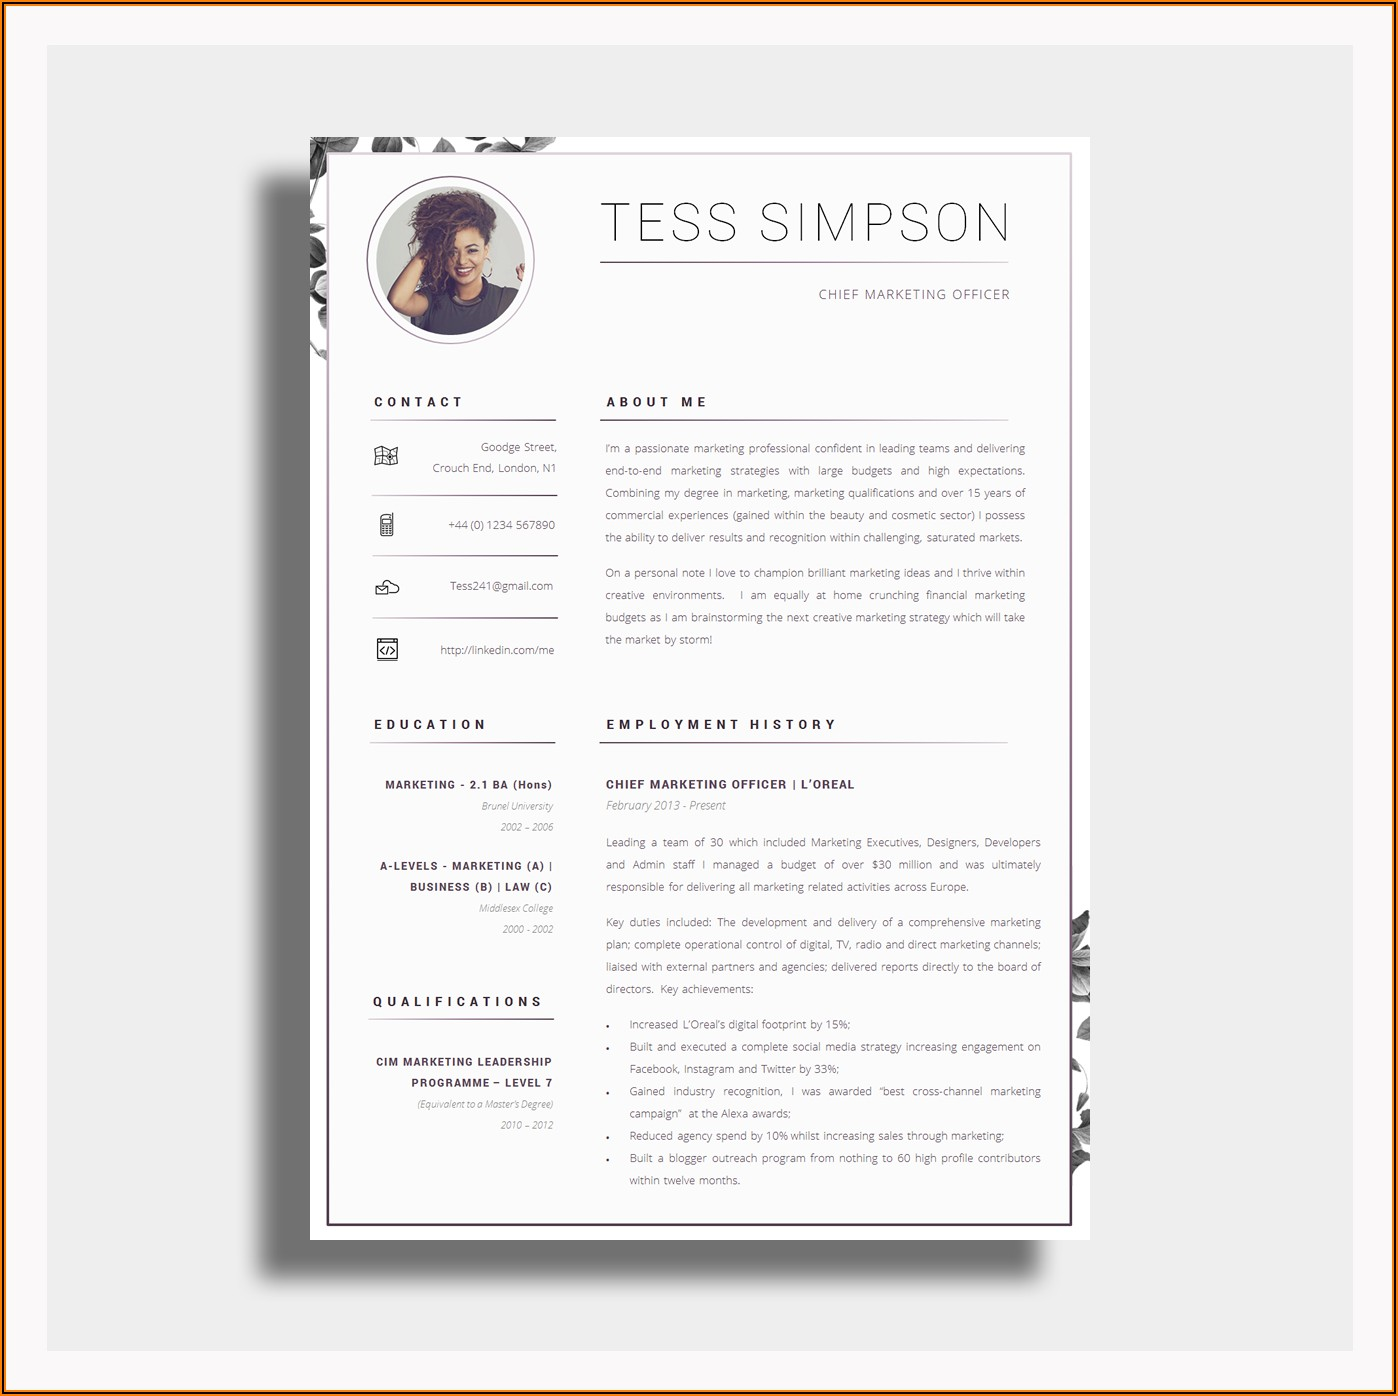 Cool Resume Templates For Word Free